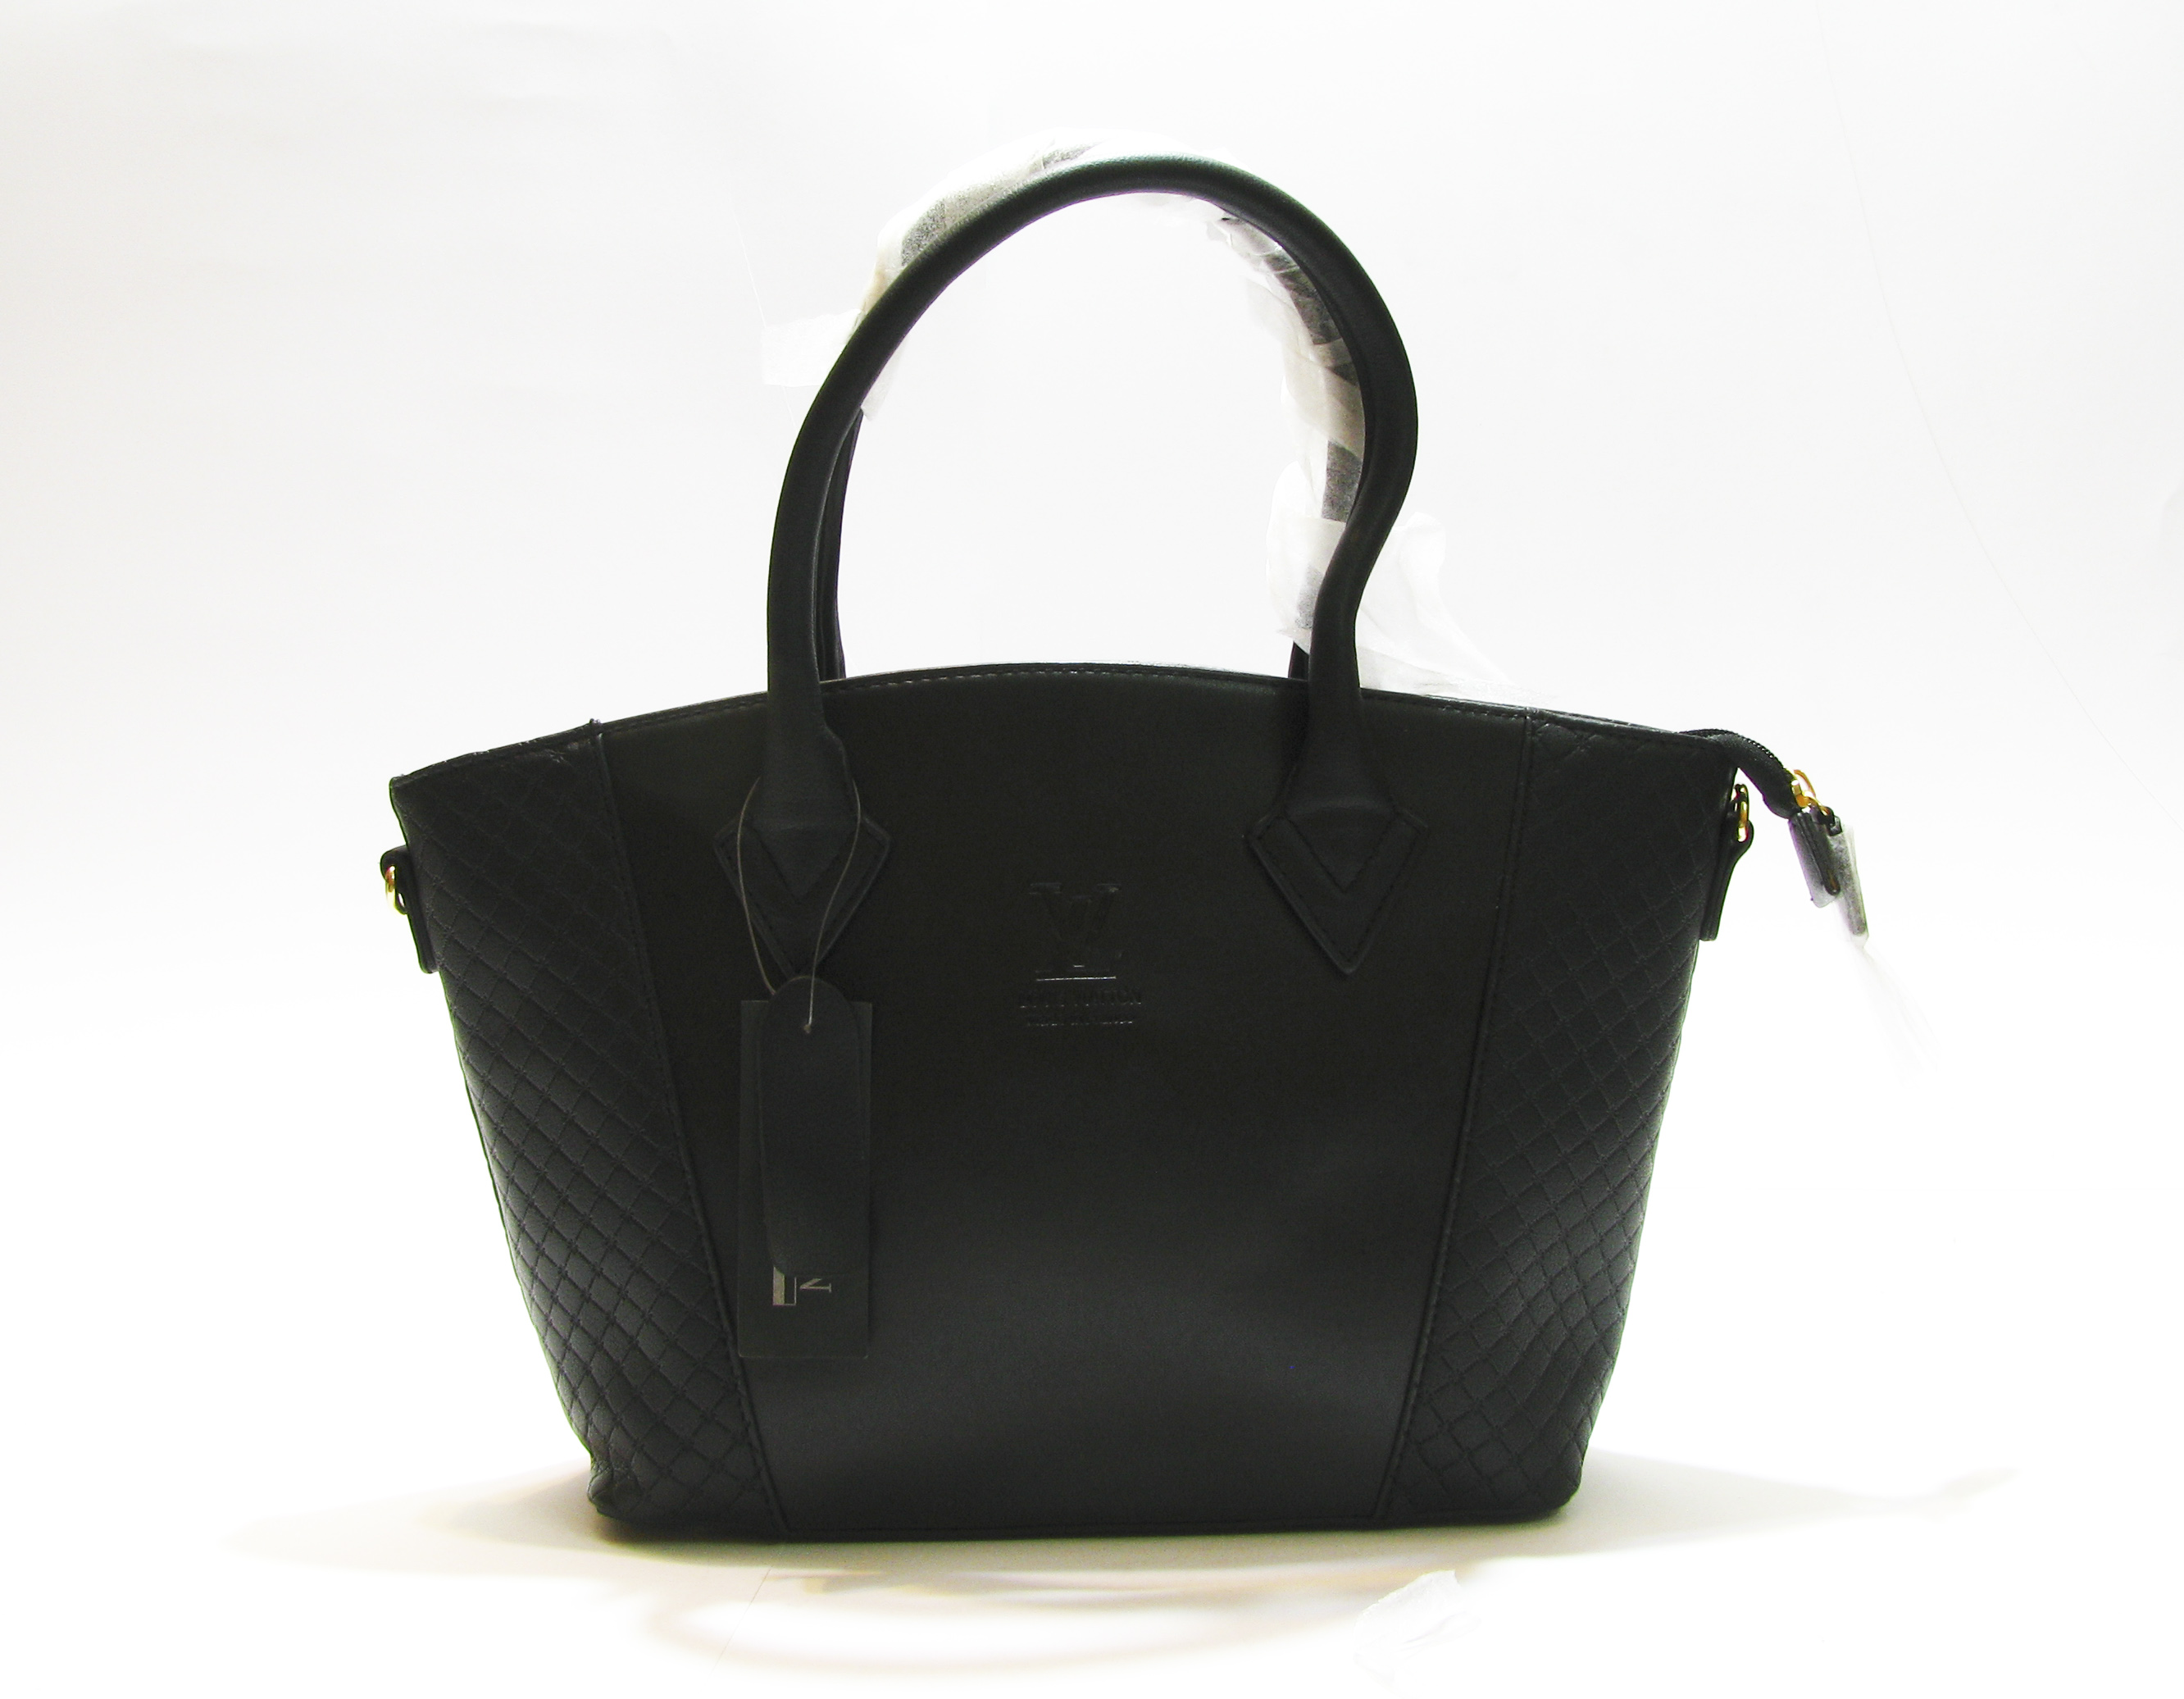 a1f693202f72 Louis Vuitton Black Cashmere Leather Tote W bag - Over Stock Pakistan